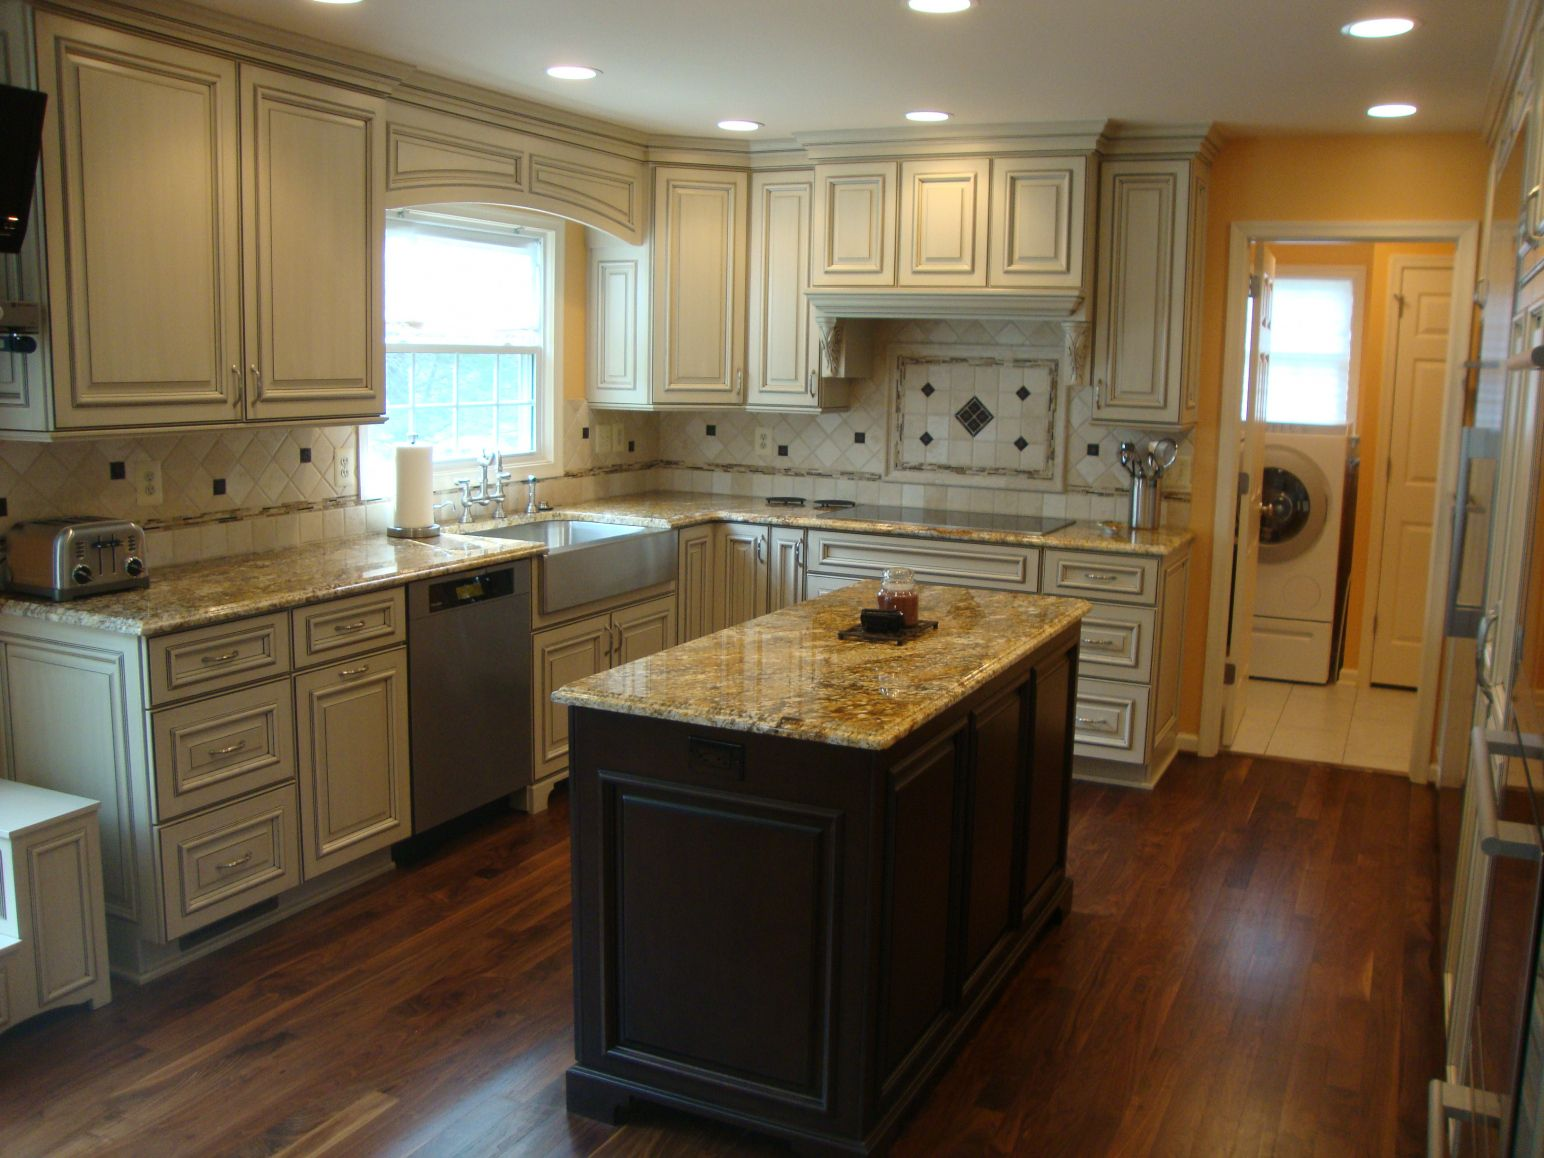 100+ Average Cost Of Remodeling Kitchen   Kitchen Remodel Ideas For Small  Kitchens Check More